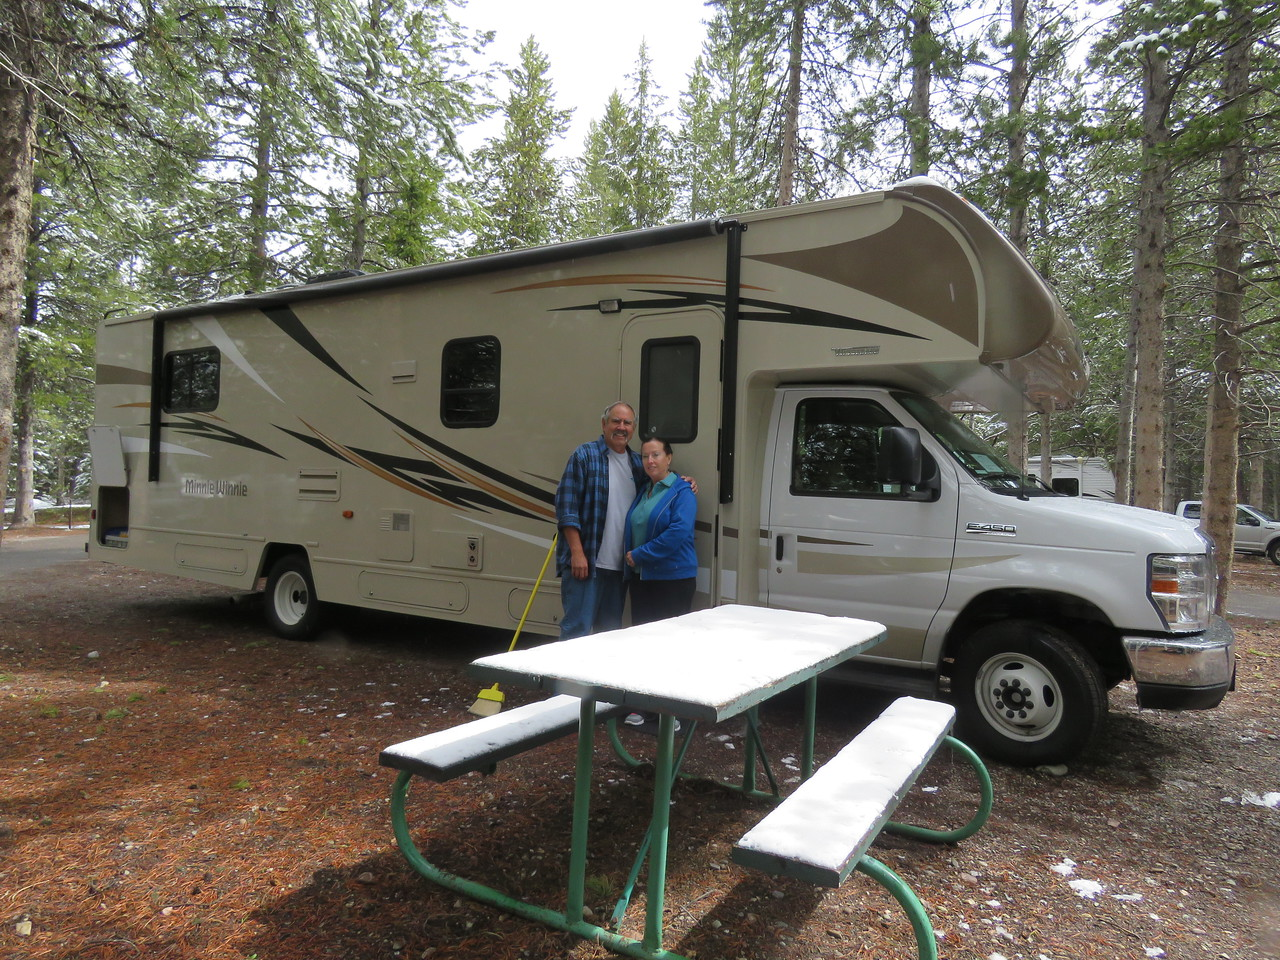 Day 15 - Coulter Bay Campground, WY